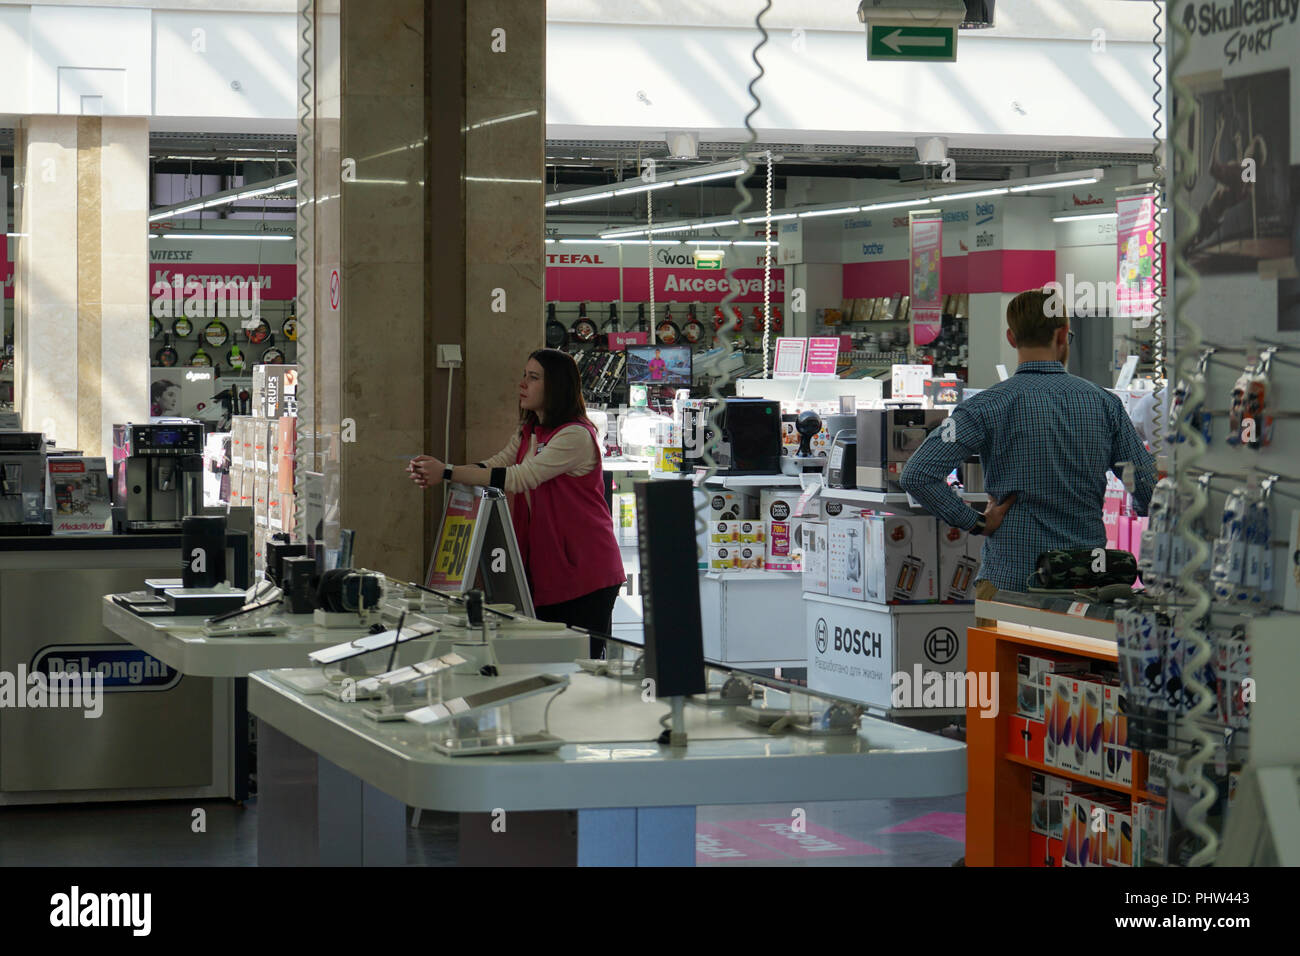 Fauteuil Massant Mediamarkt Mall Employee Photos Mall Employee Images Alamy